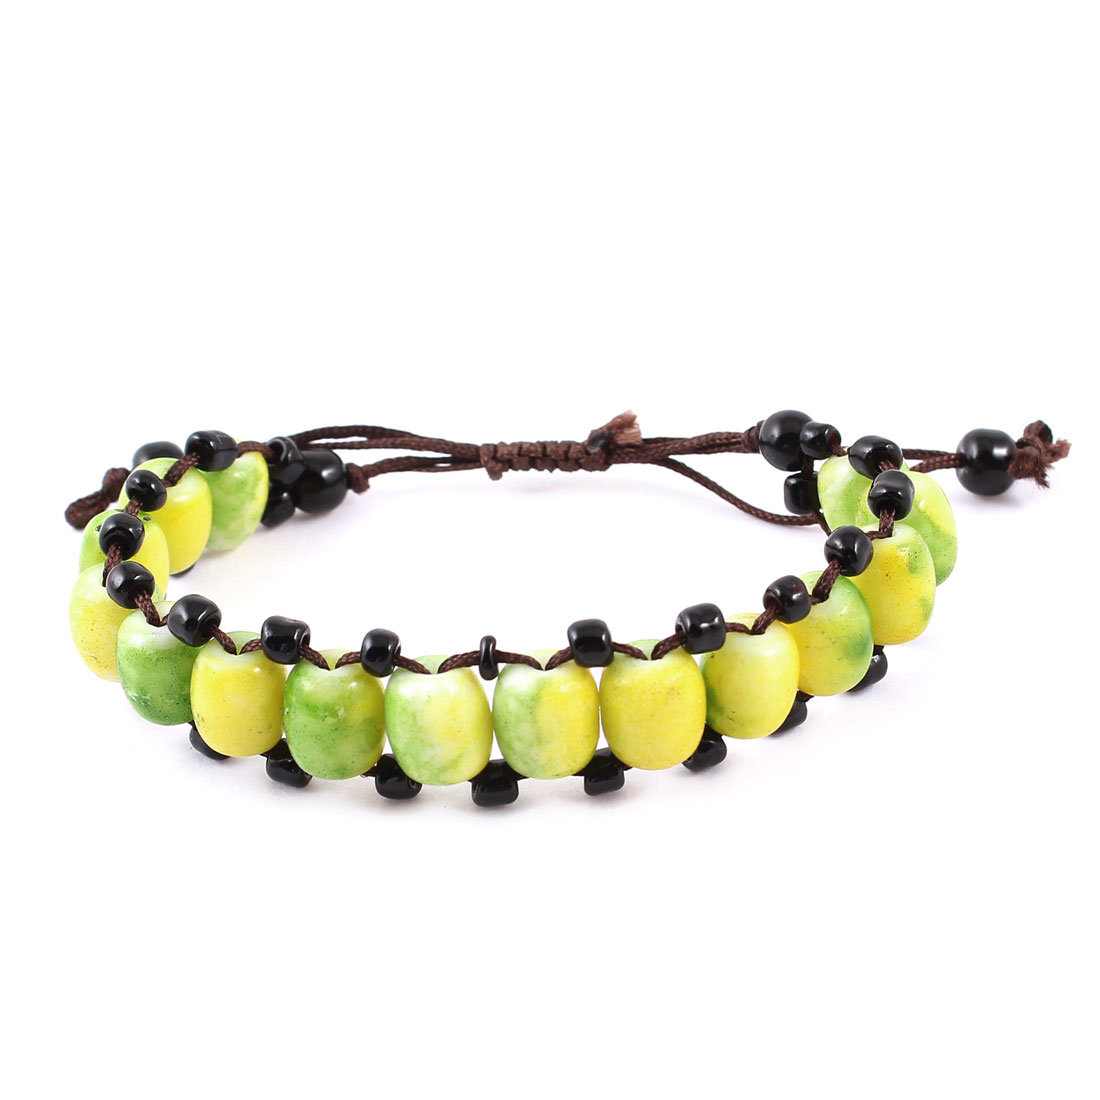 Lady Handmade Nylon Rope Yellow Green Plastic Beads Decor Pull String Wrist Bracelet